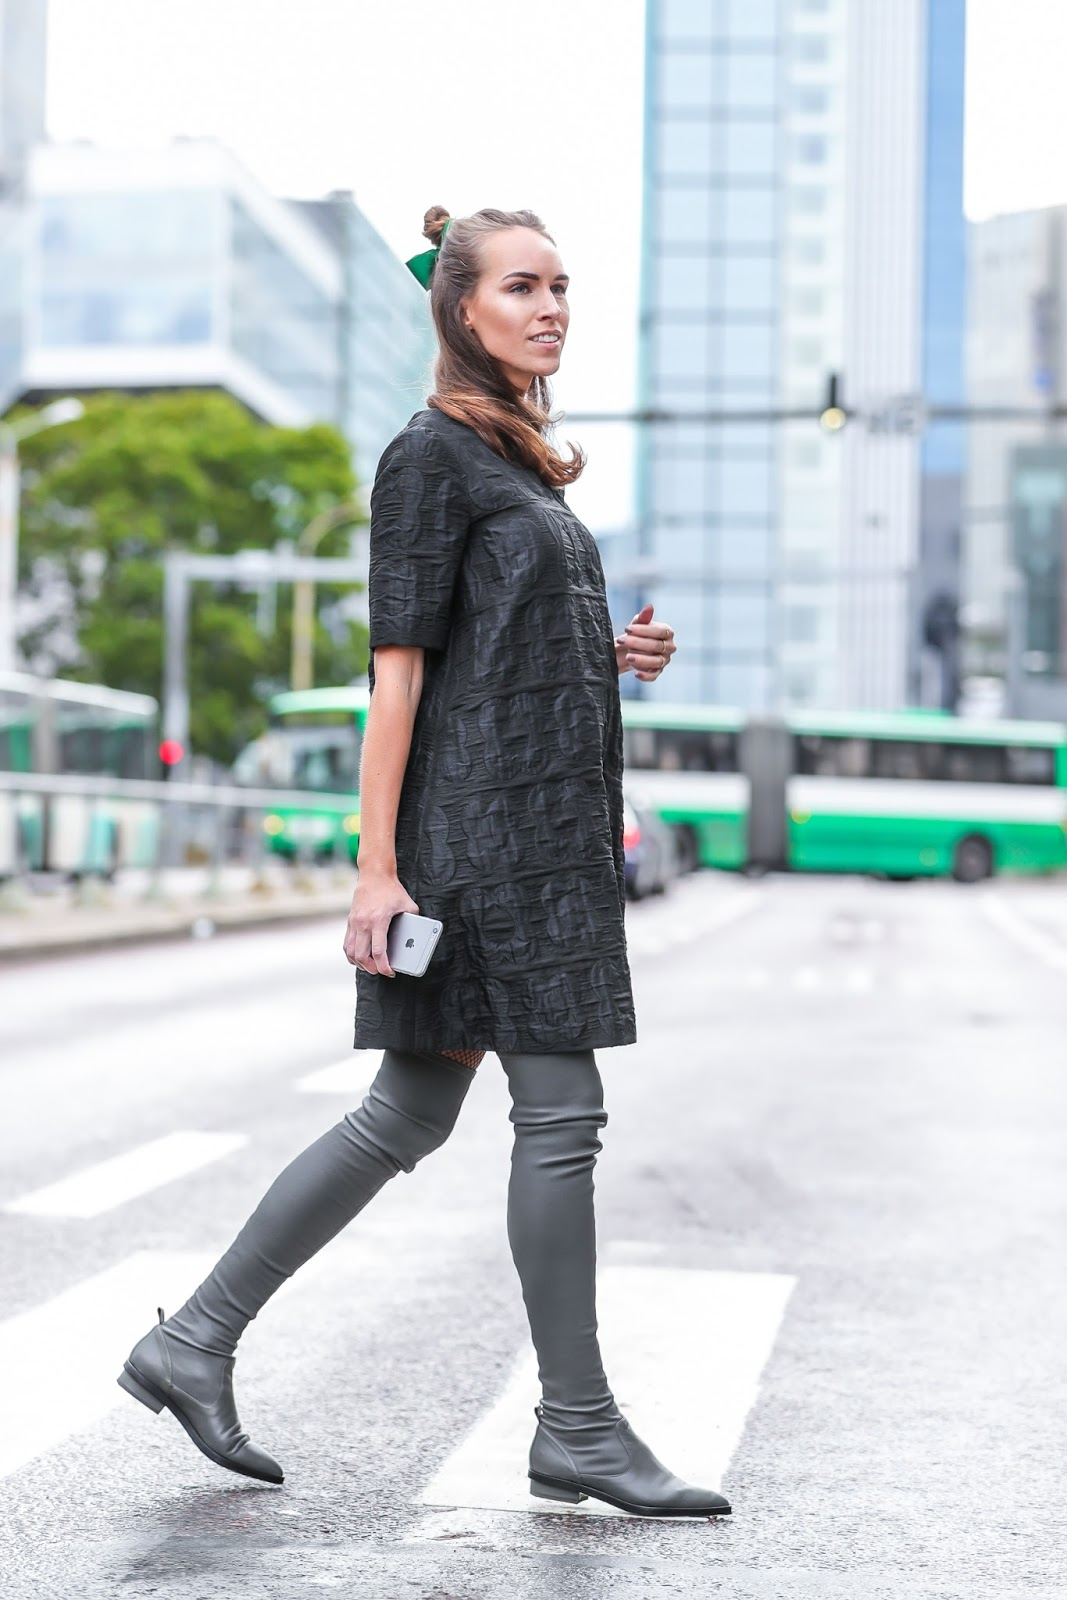 black textured mini dress over knee boots outfit